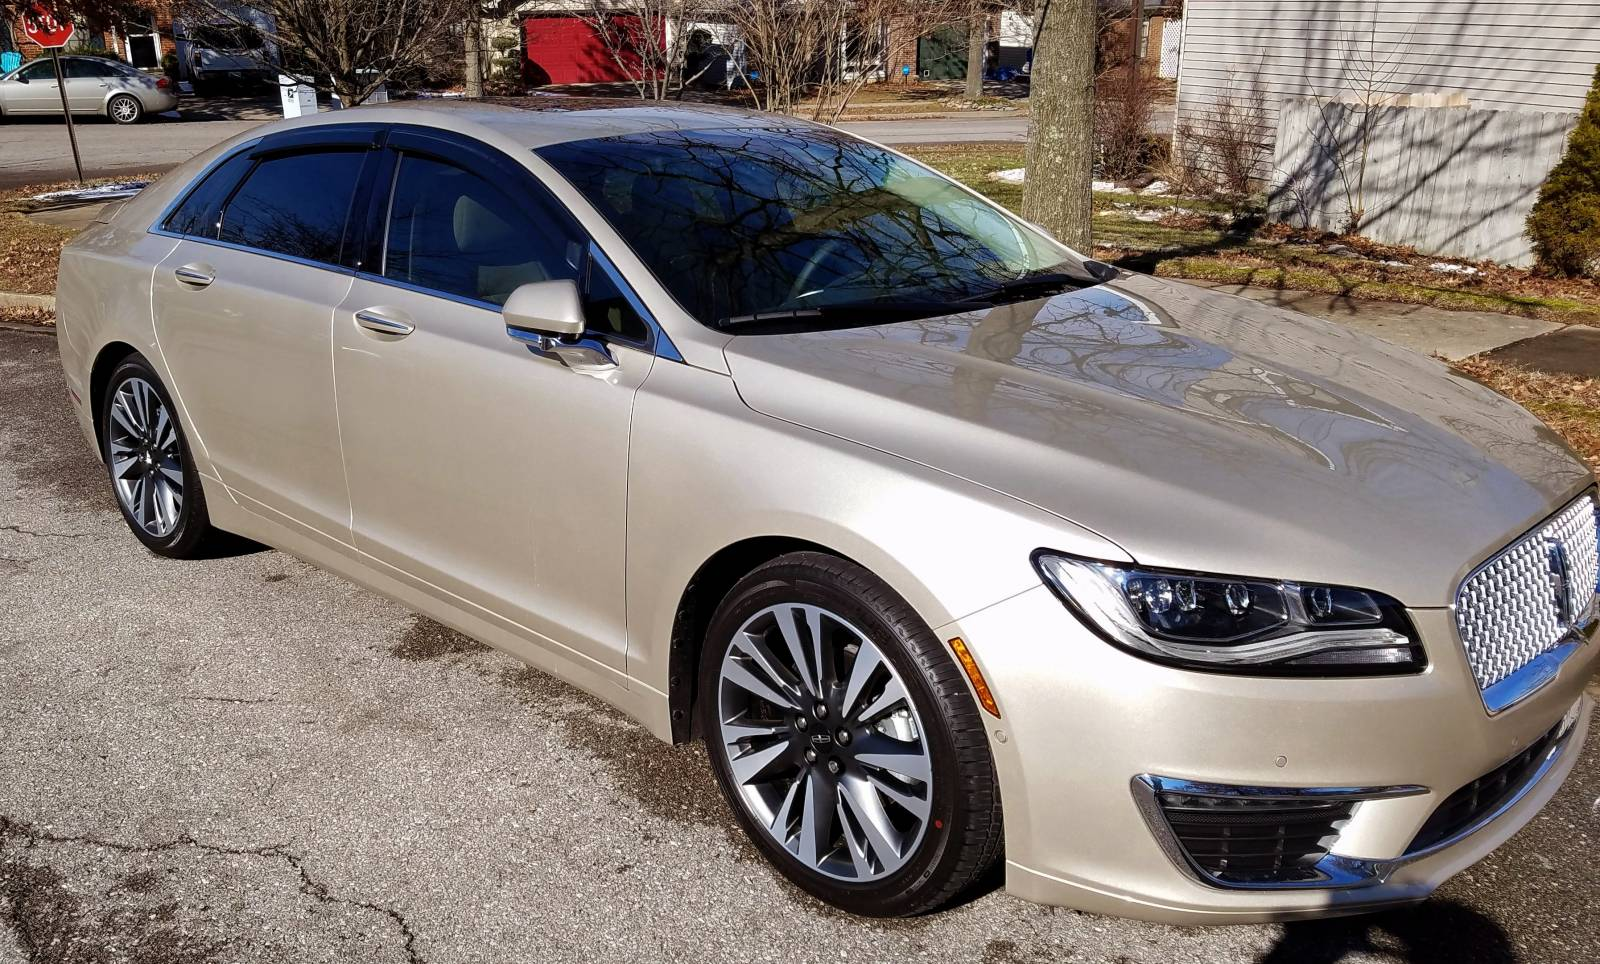 lincoln 2017 mkz hybrid reserve mpg photo gallery lincoln mkz forum lincoln zephyr forum. Black Bedroom Furniture Sets. Home Design Ideas